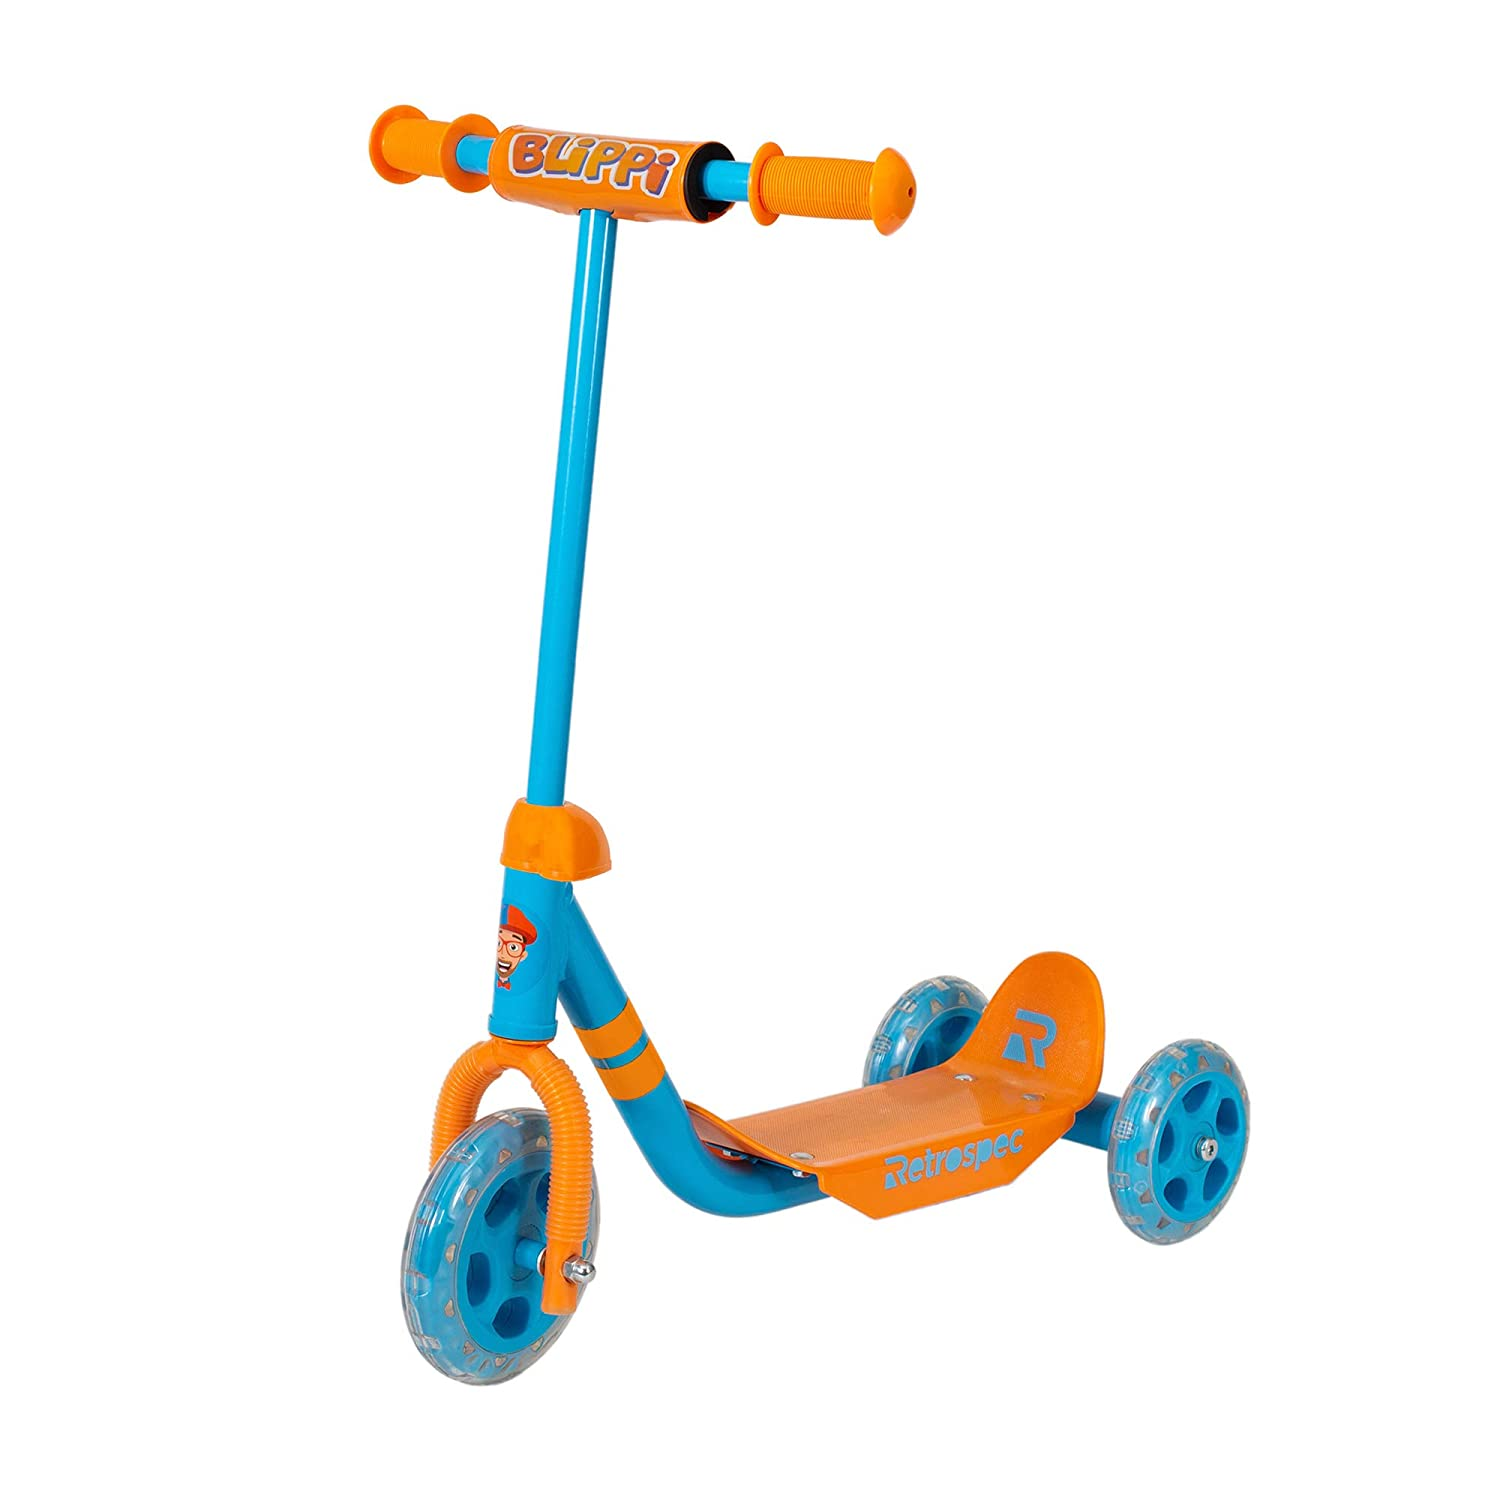 Retrospec Chippy 3-Wheel Kick Scooter for Kids Toddlers PU Wheels and Extra Wide Deck Perfect for Children Girls and Boys with Padded Handlebars